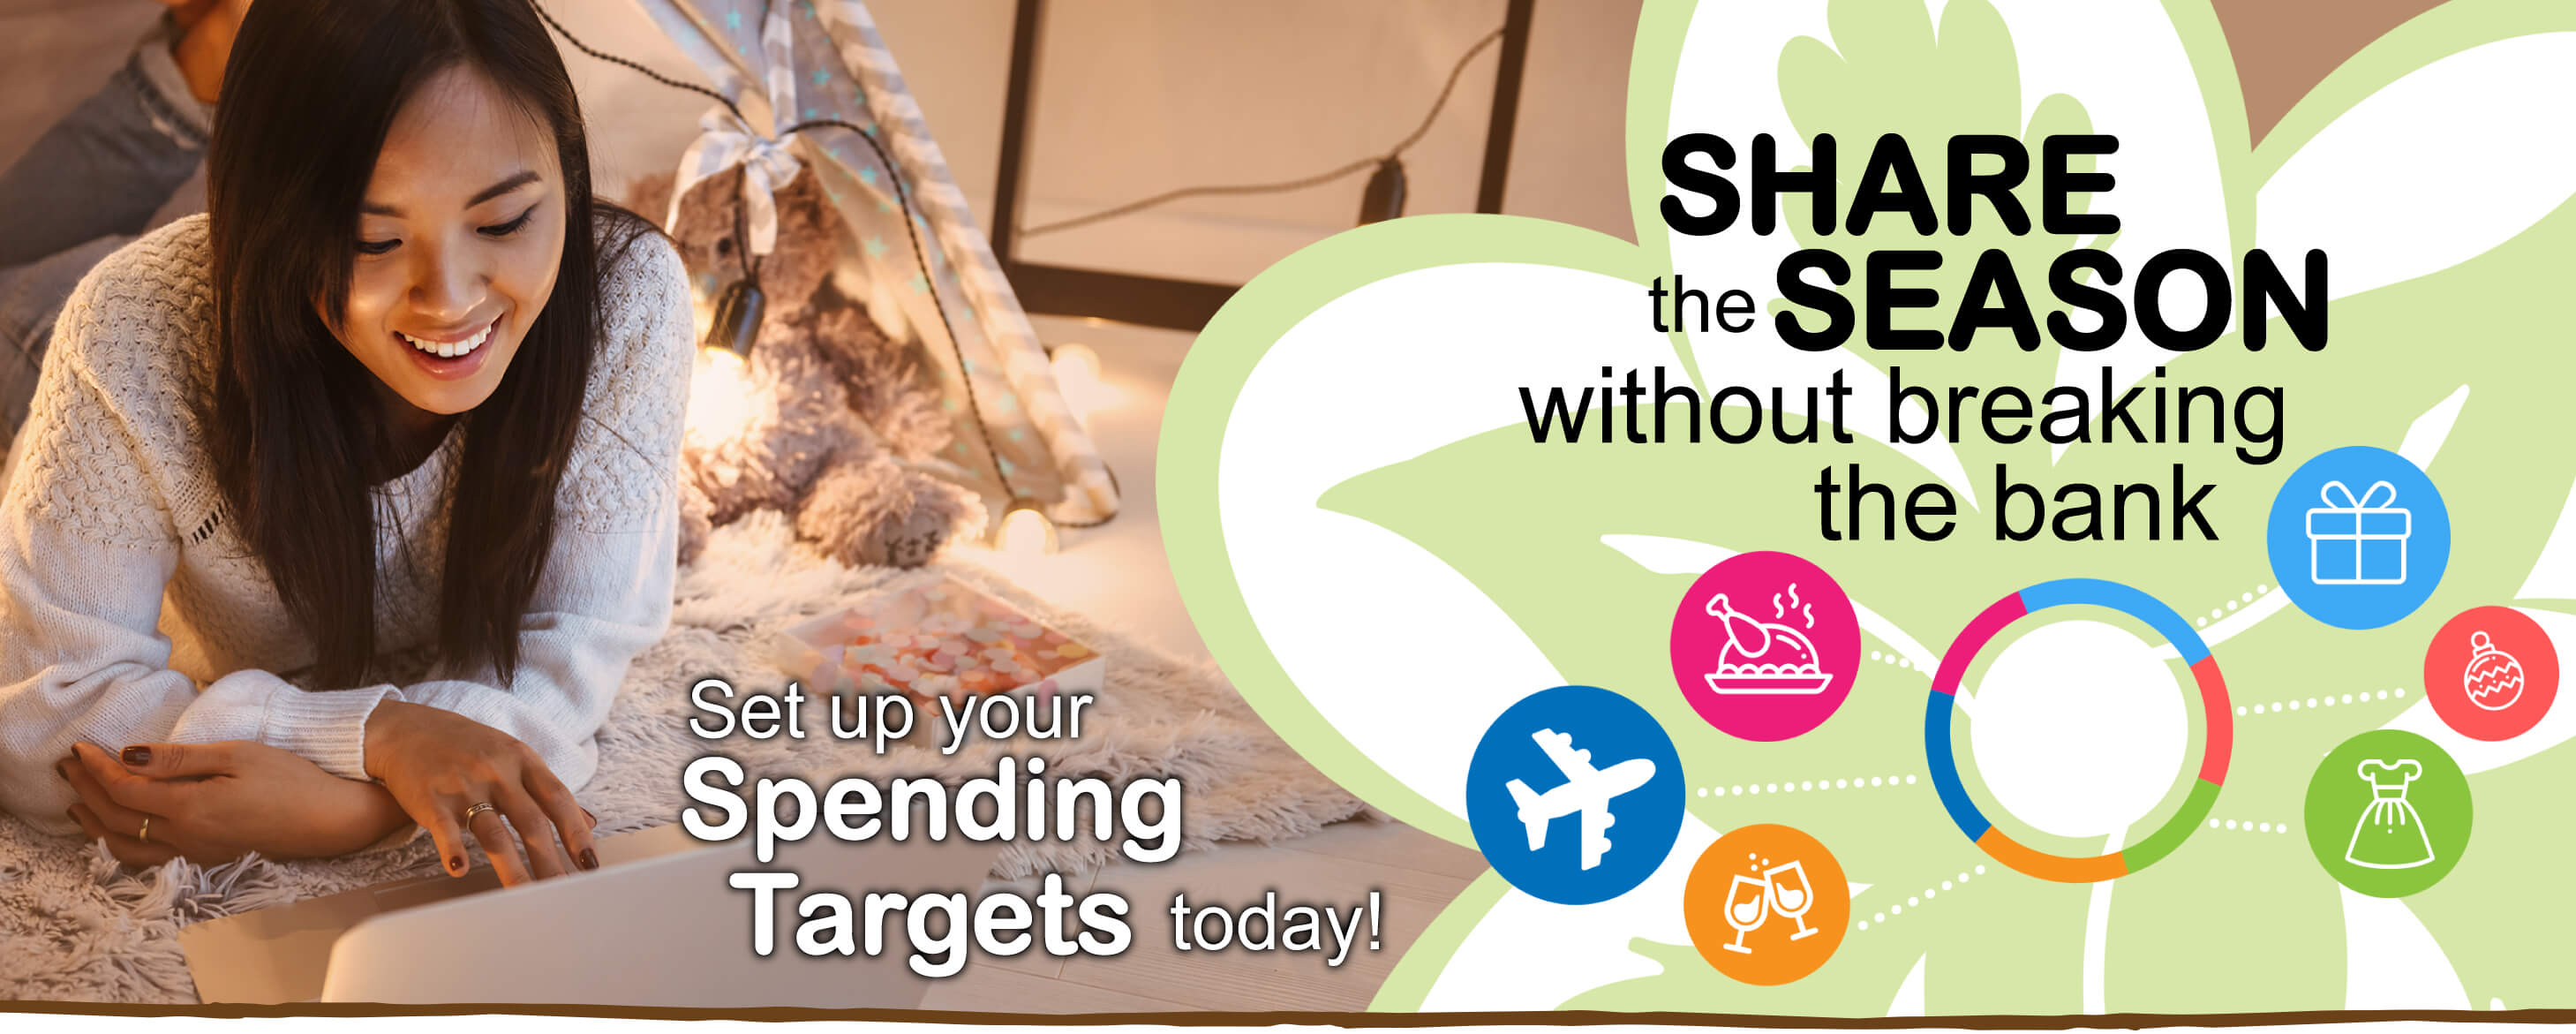 Share the season without breaking the bank.  Set up your spending targets today!